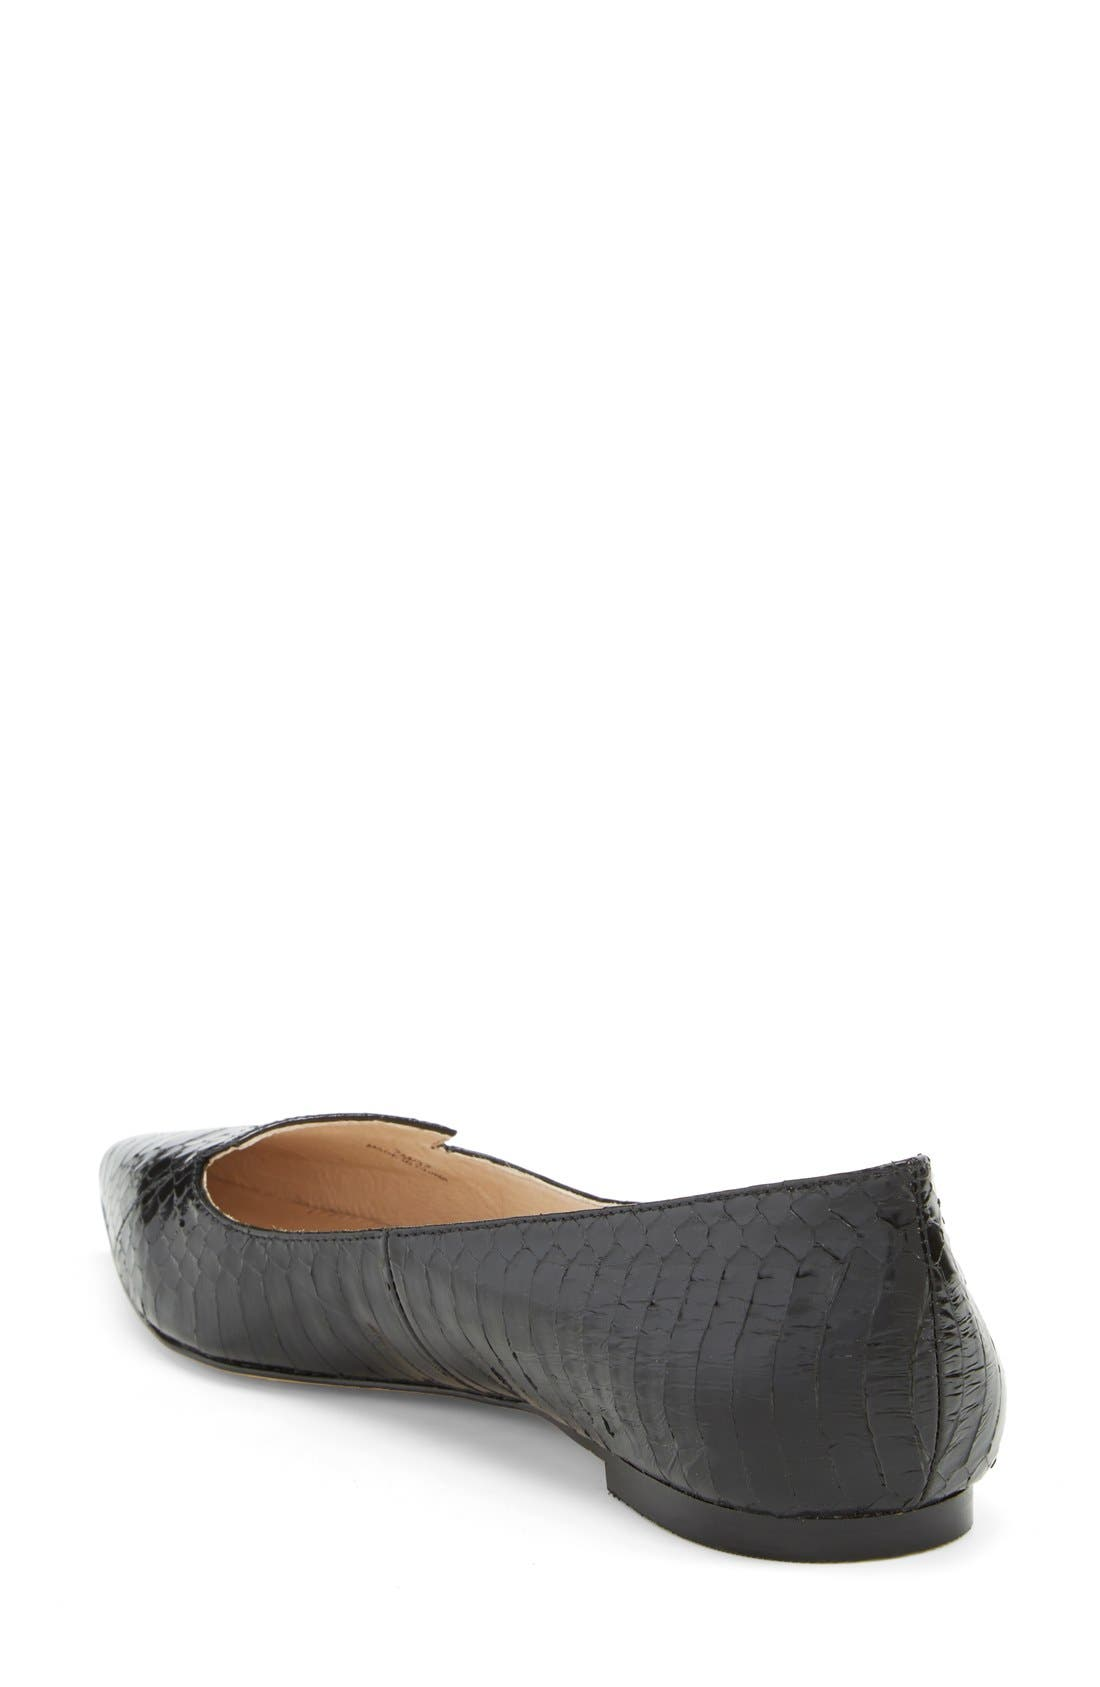 'Empa' Pointy Toe Loafer Flat,                             Alternate thumbnail 3, color,                             001